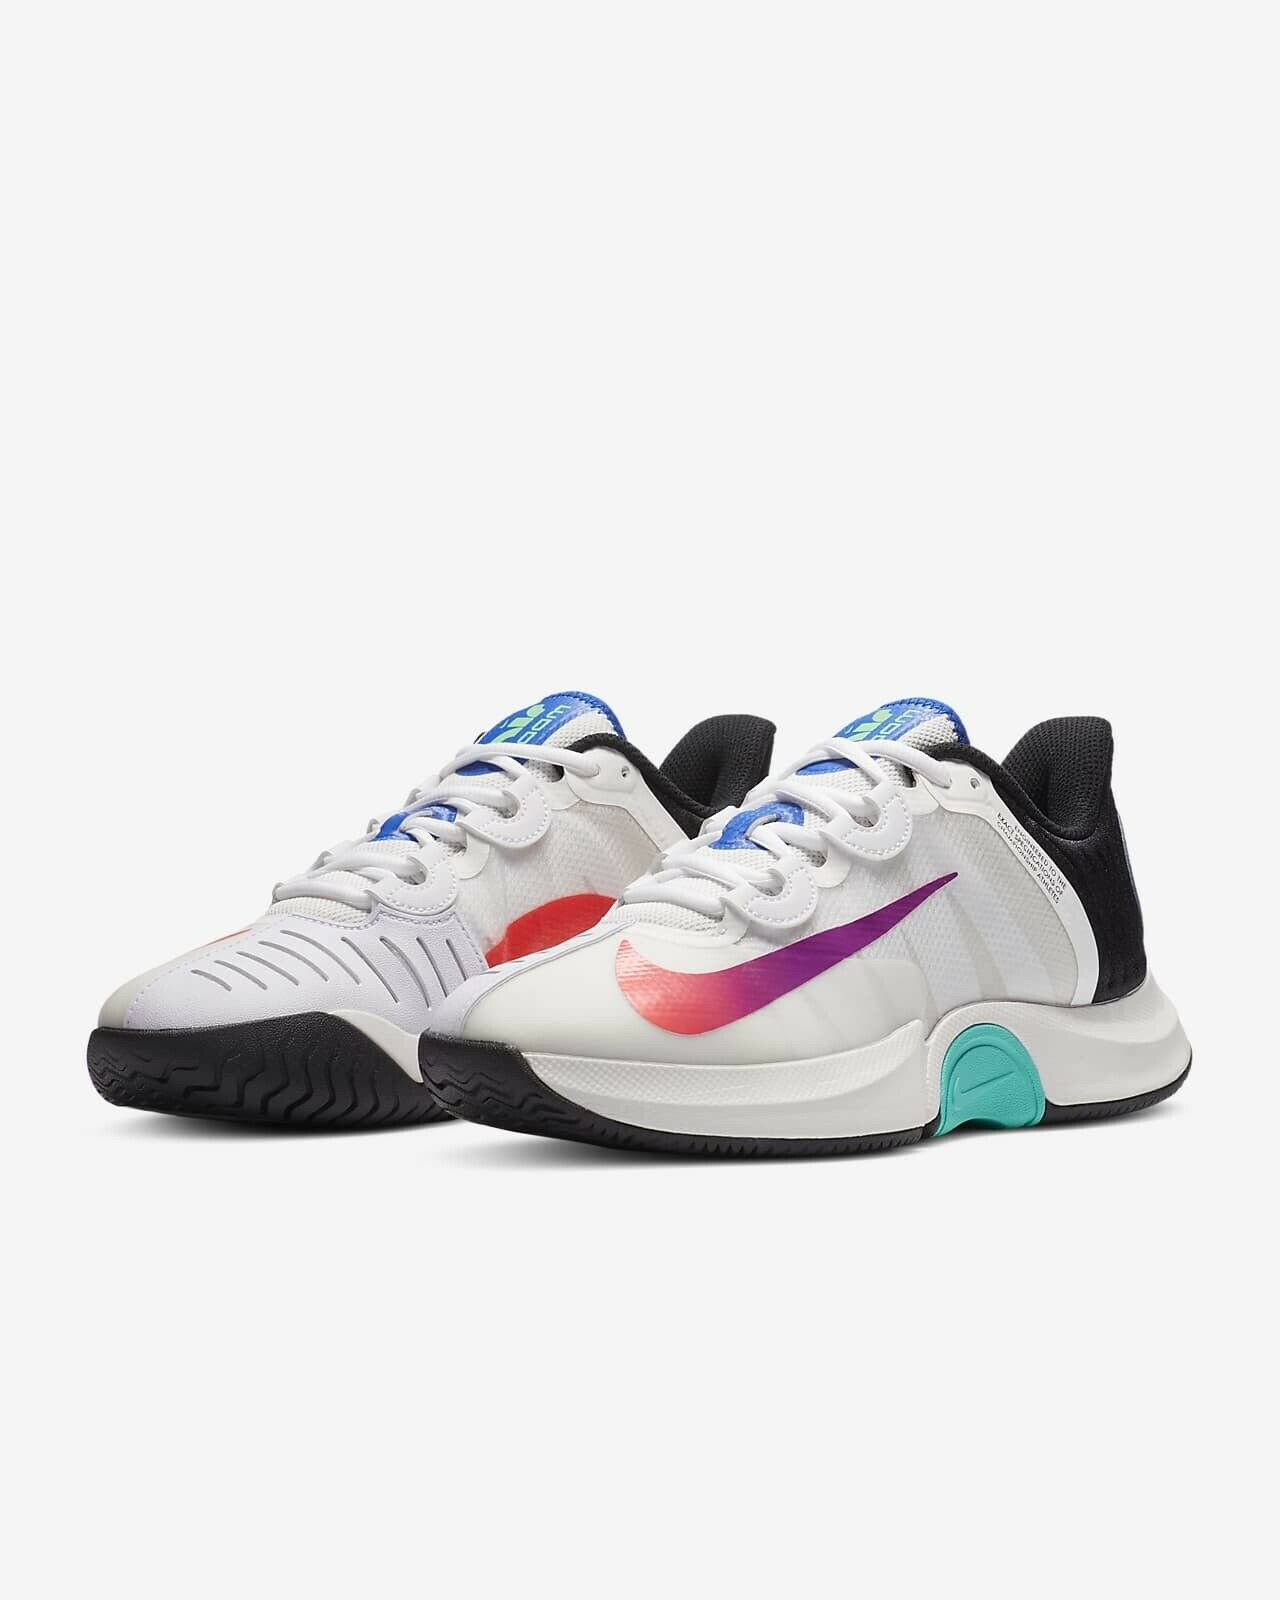 Size 7.5 - Nike Air Zoom GP Turbo Ombre Swoosh for sale online   eBay